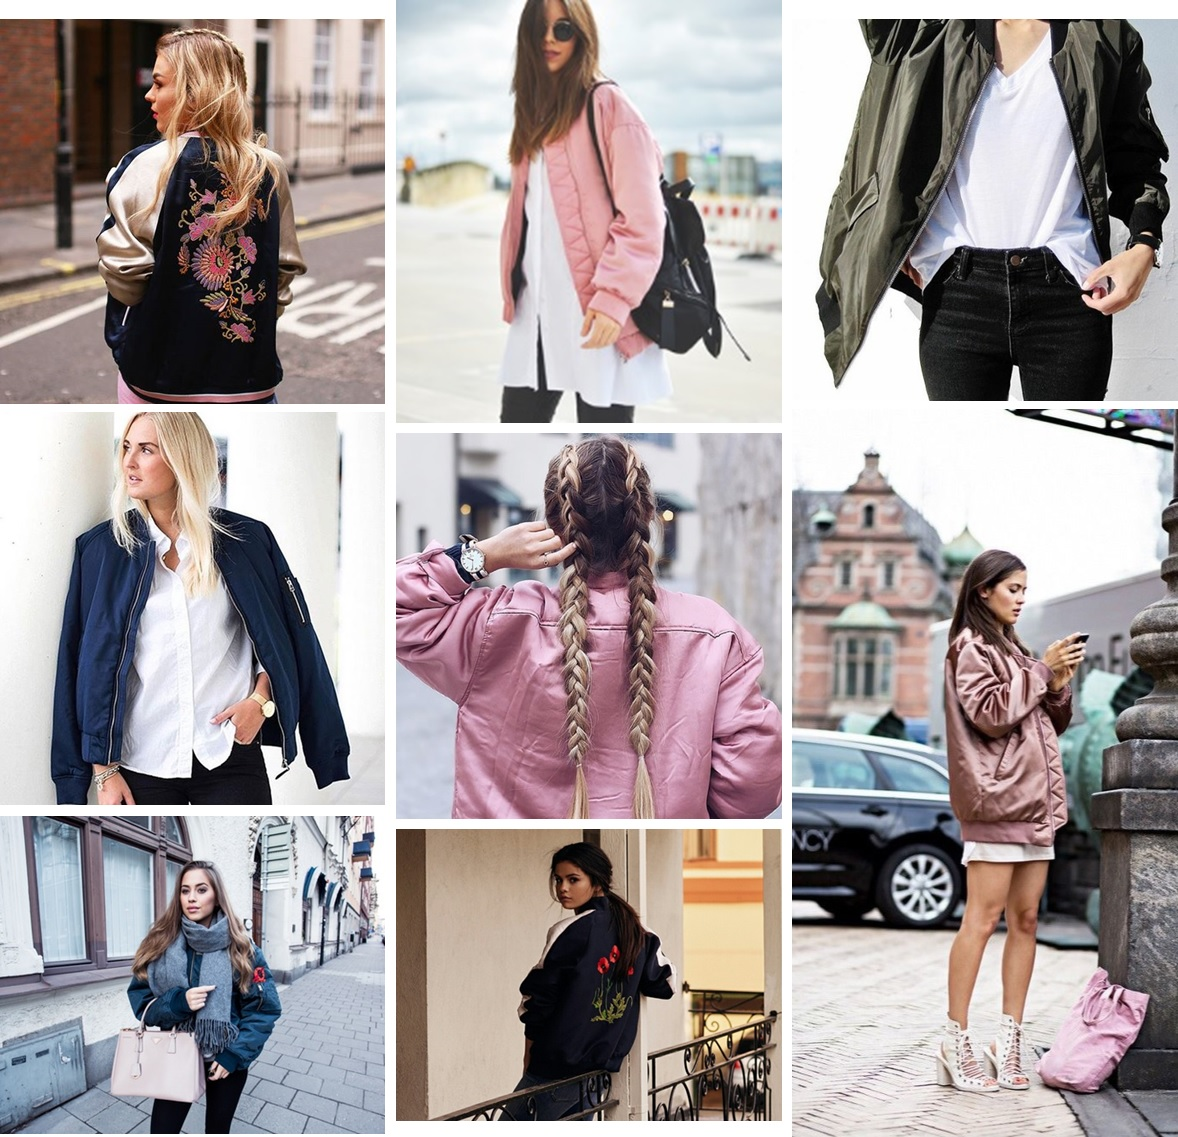 tendencias_trends_bomber_jacket_pink_bomber_jacket_moda_fashion